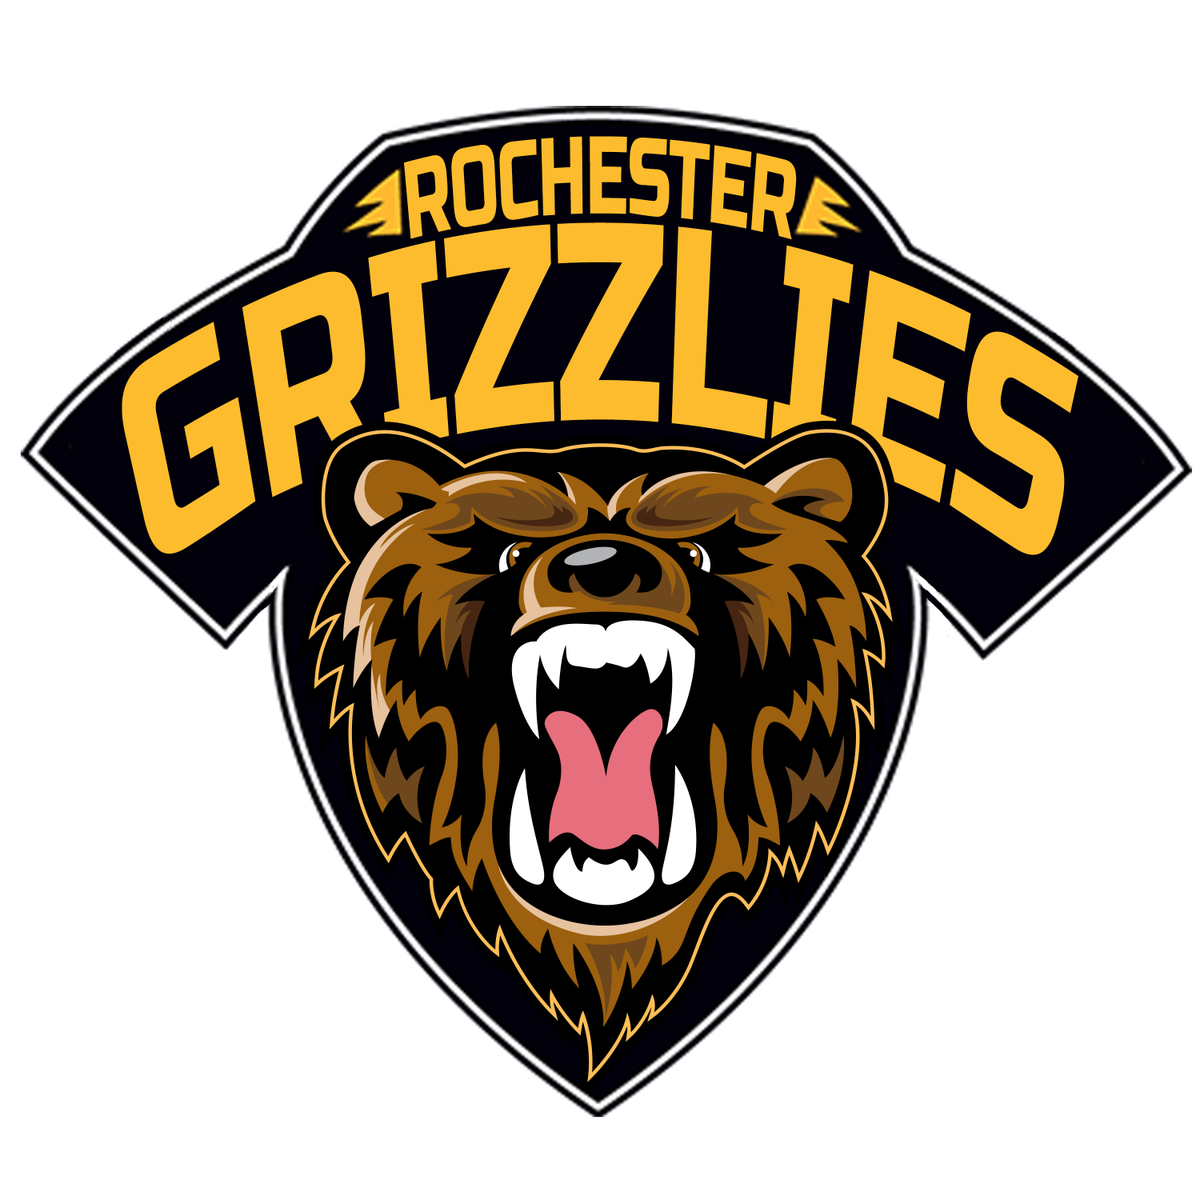 Grizzlies baseball clipart graphic black and white stock Junior hockey: Grizzlies first draft yields familiar names | Local ... graphic black and white stock